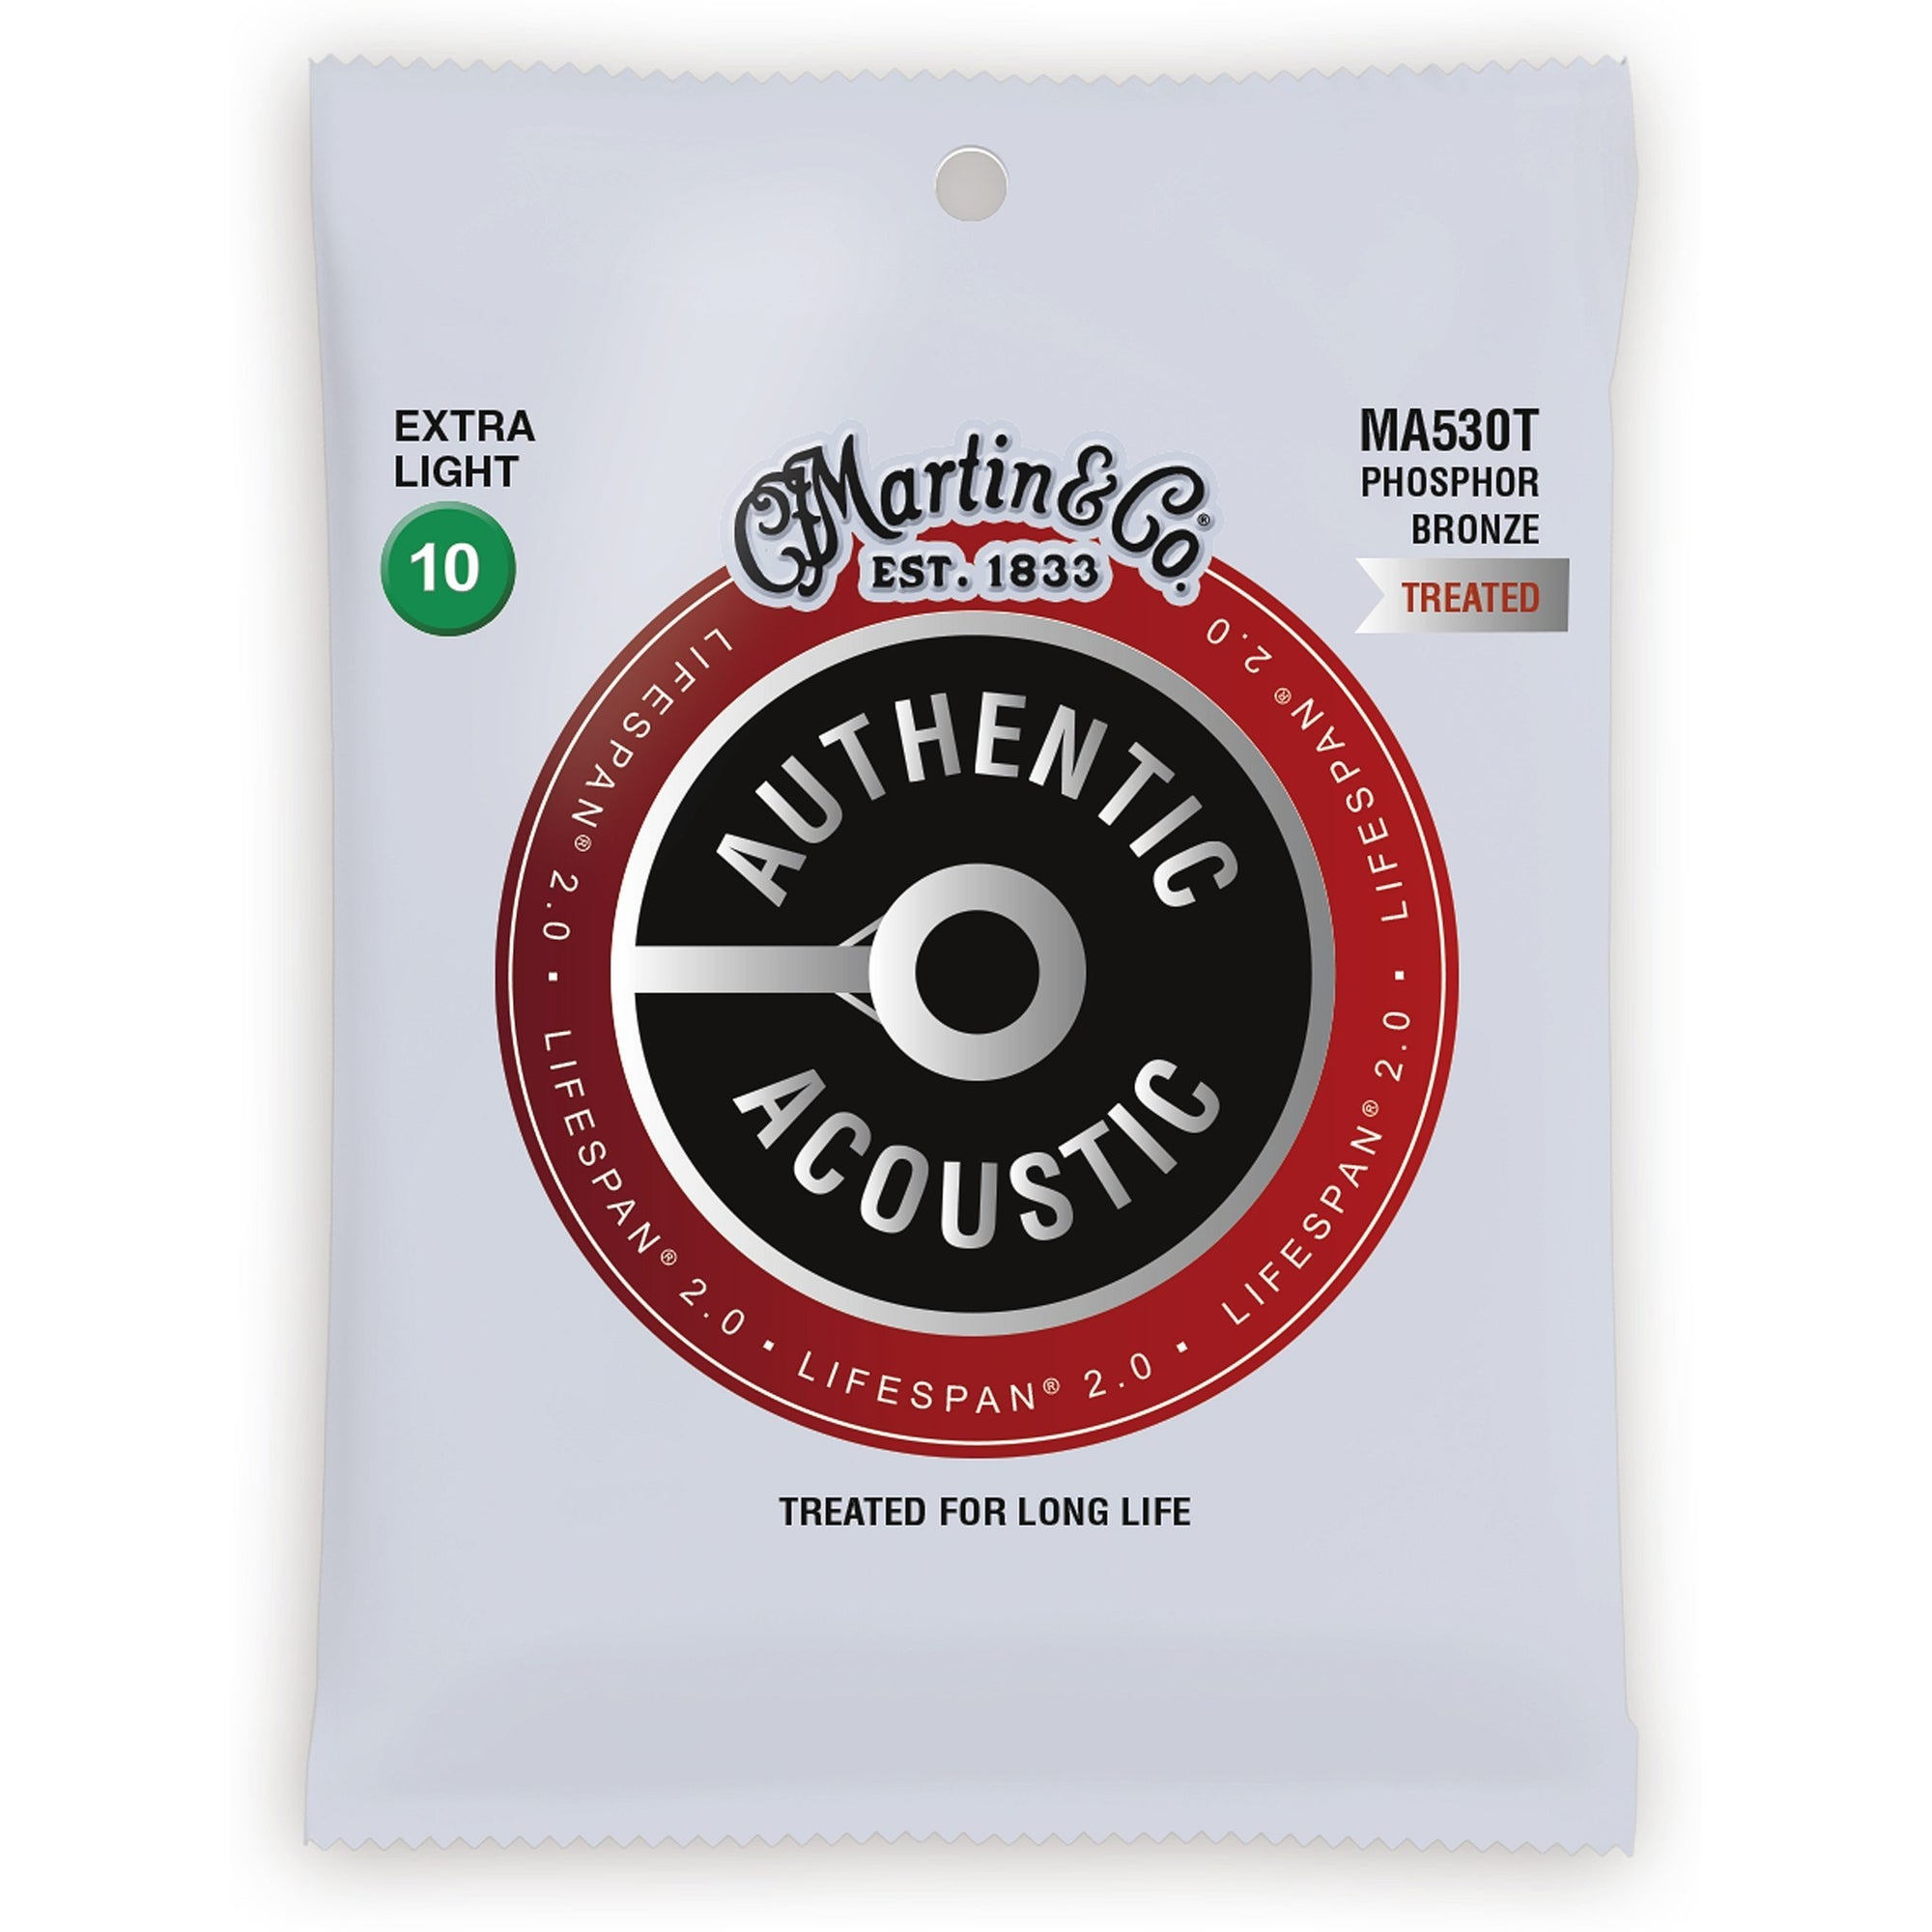 Martin Authentic Lifespan 2.0 Treated Phosphor Bronze Acoustic Guitar Strings, MA530T, Extra Light